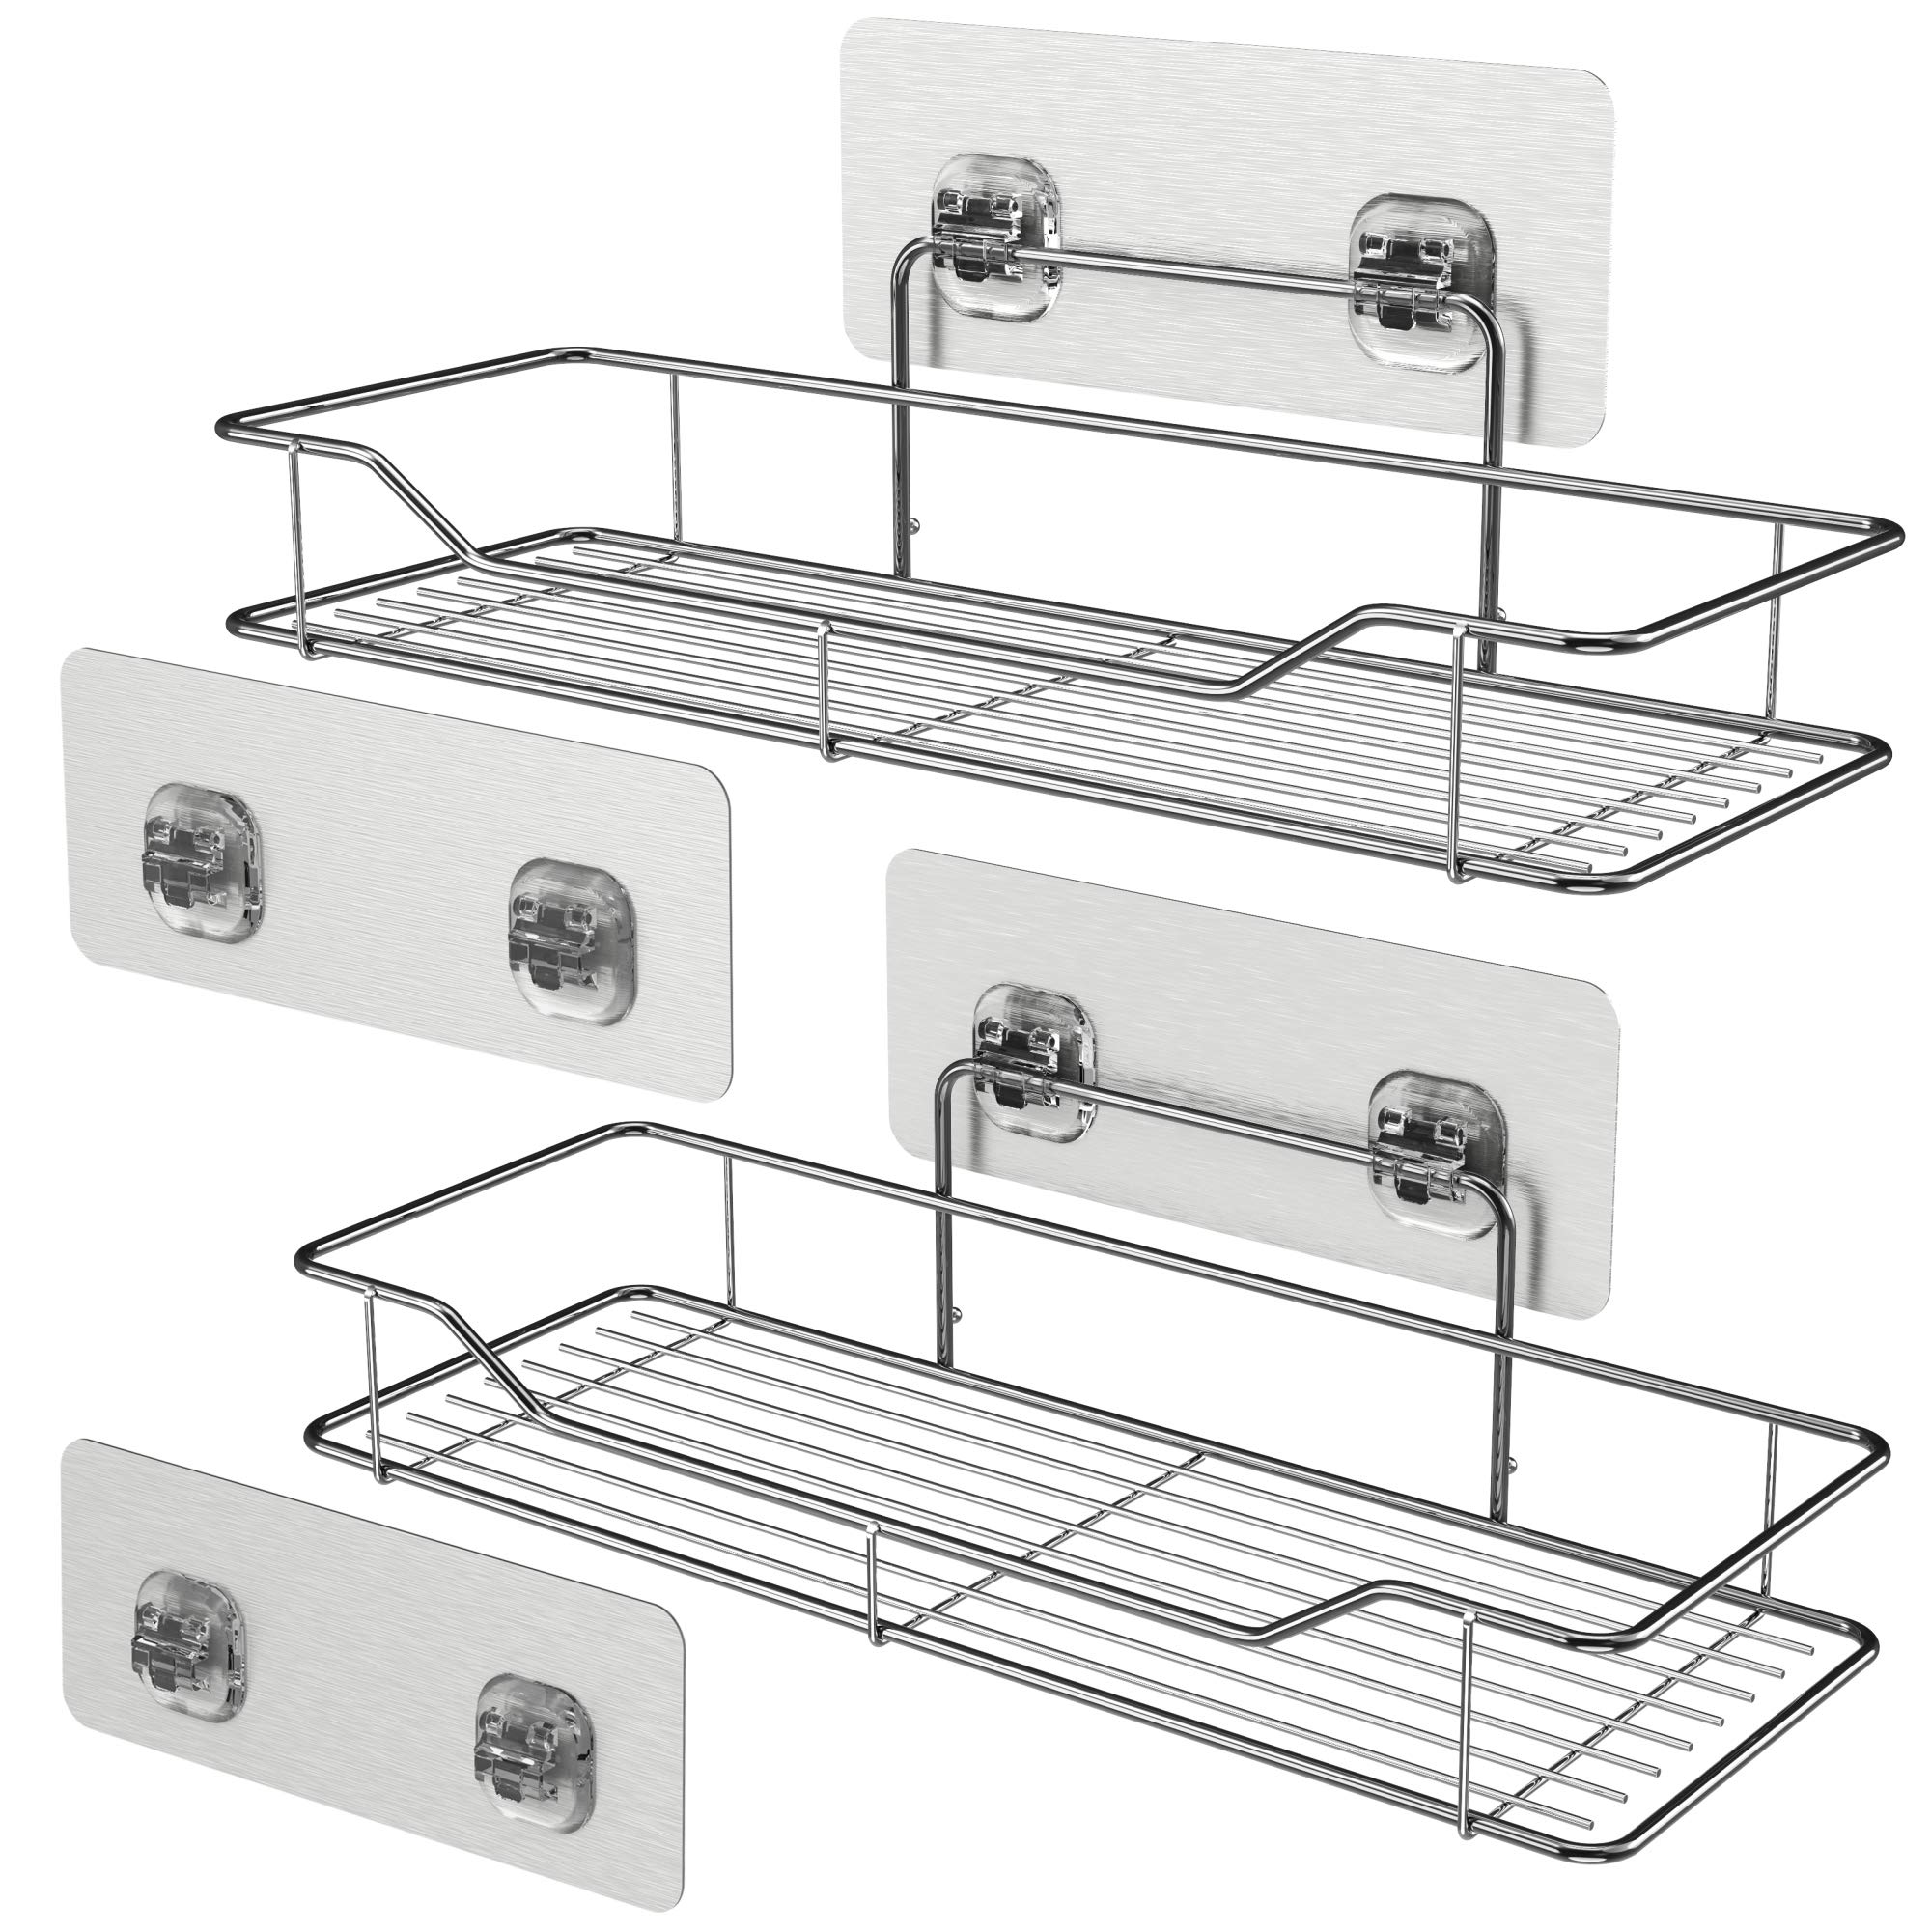 Bathroom Shelves, Veckle Adhesive Shower Caddy Shelf Traceless Wall Mounted Kitchen Rack No Drilling Storage Organizer Stainless Steel Shelf 2 Pack